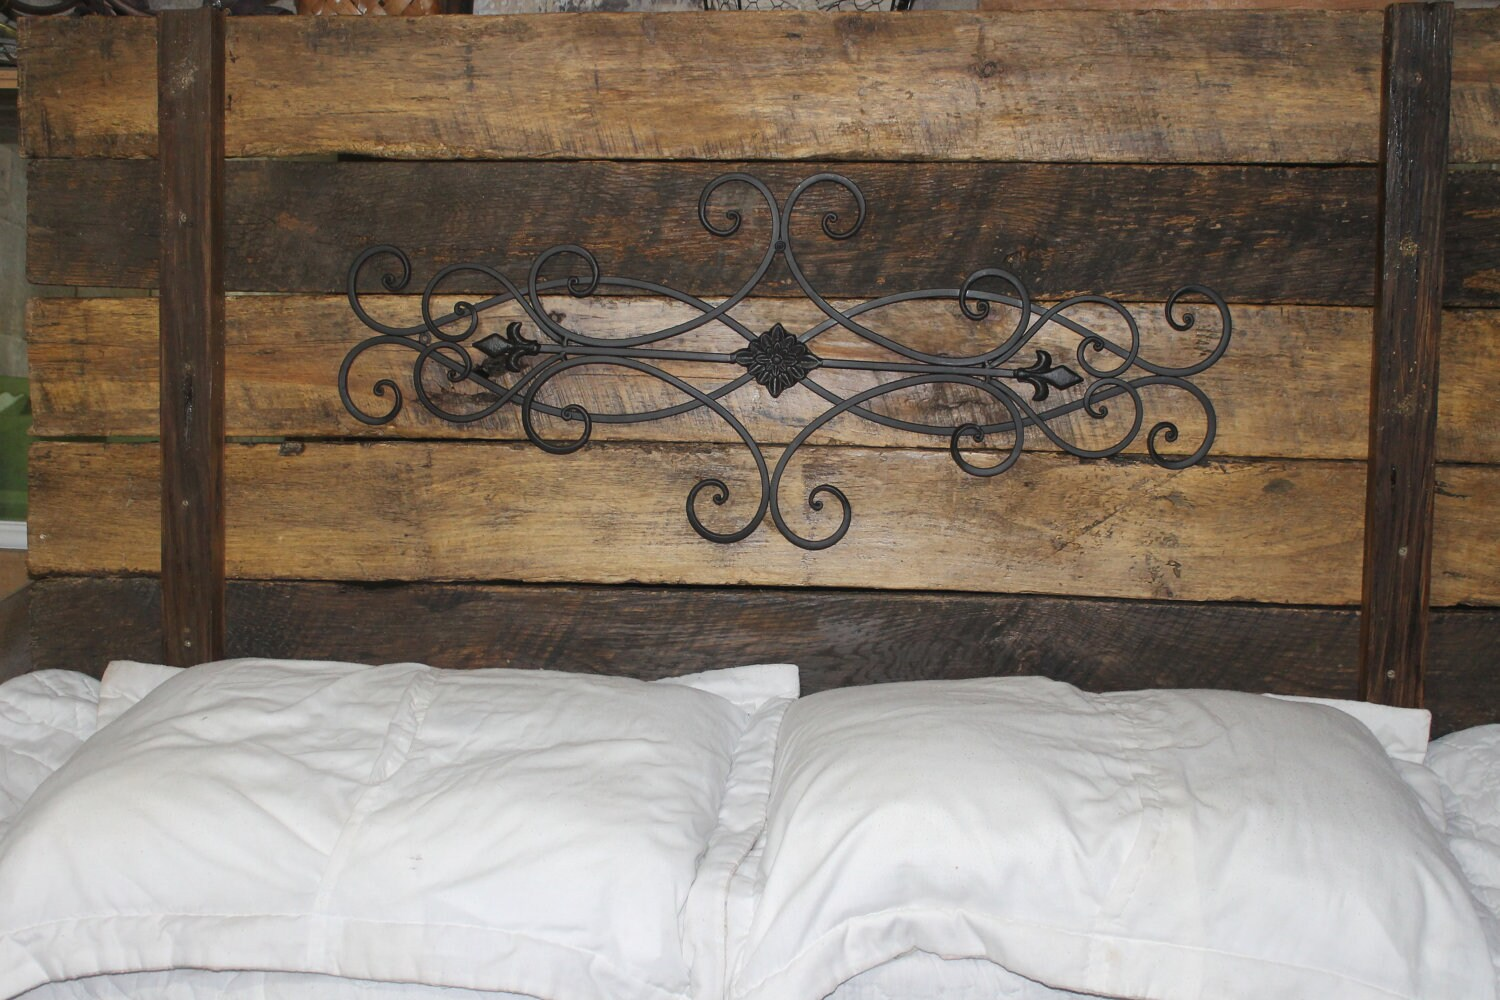 50 Kids Wrought Iron Bed Wrought Iron Queen Headboard: Wrought Iron Rustic Wood HeadboardCassidey